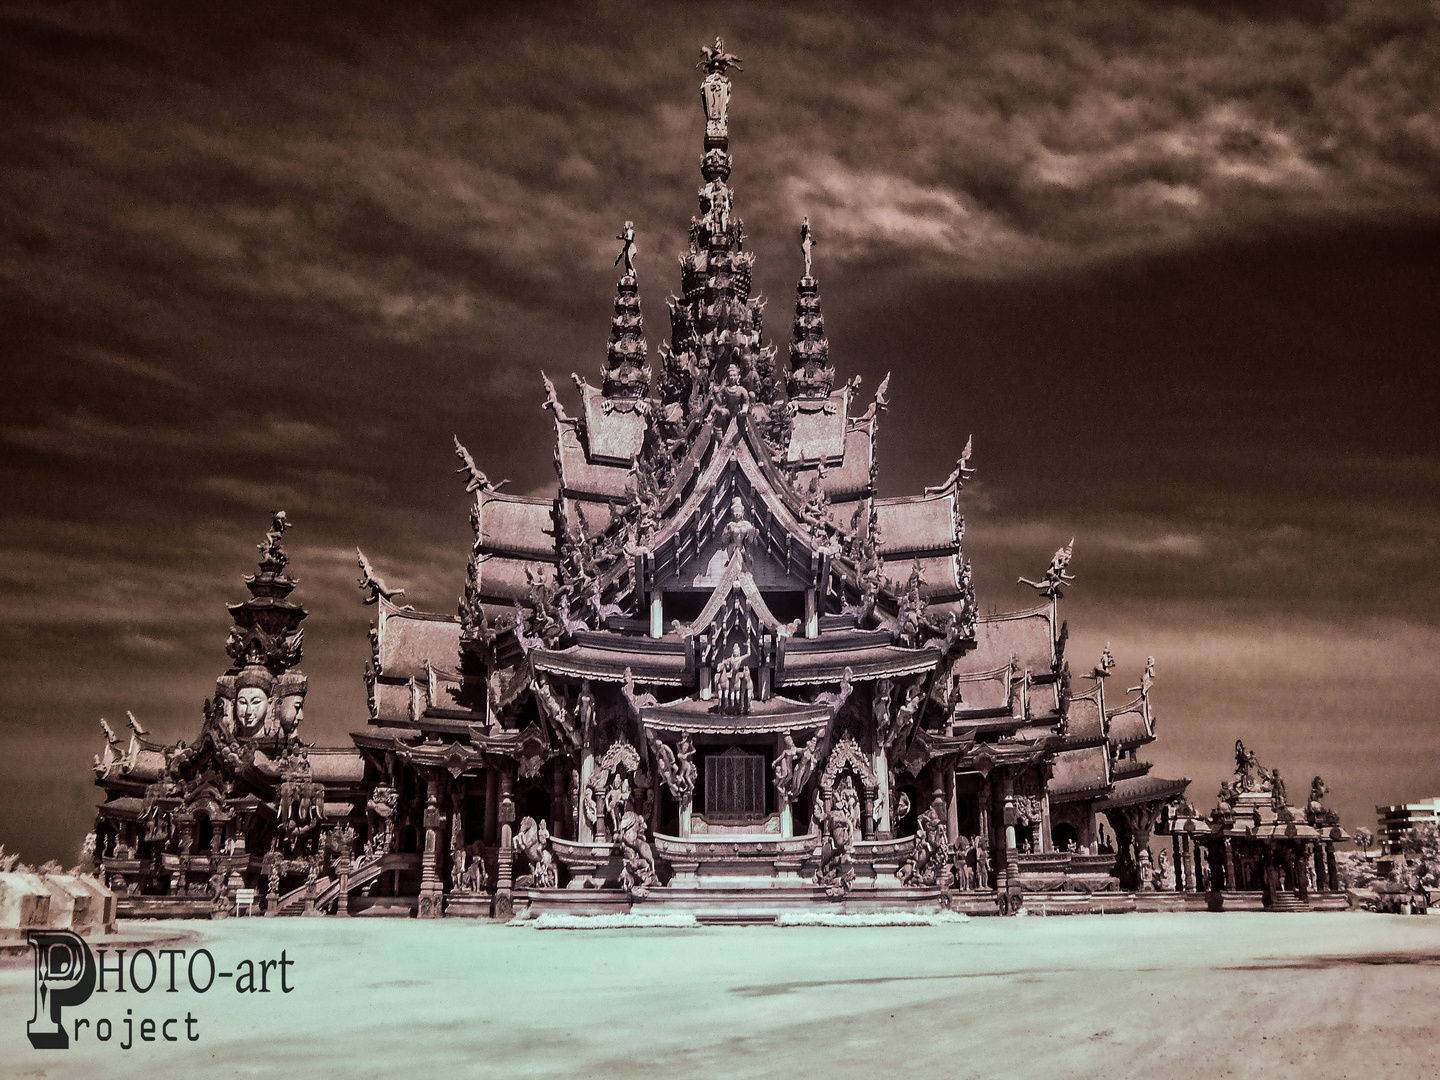 The Sanctuary of Truth infrared